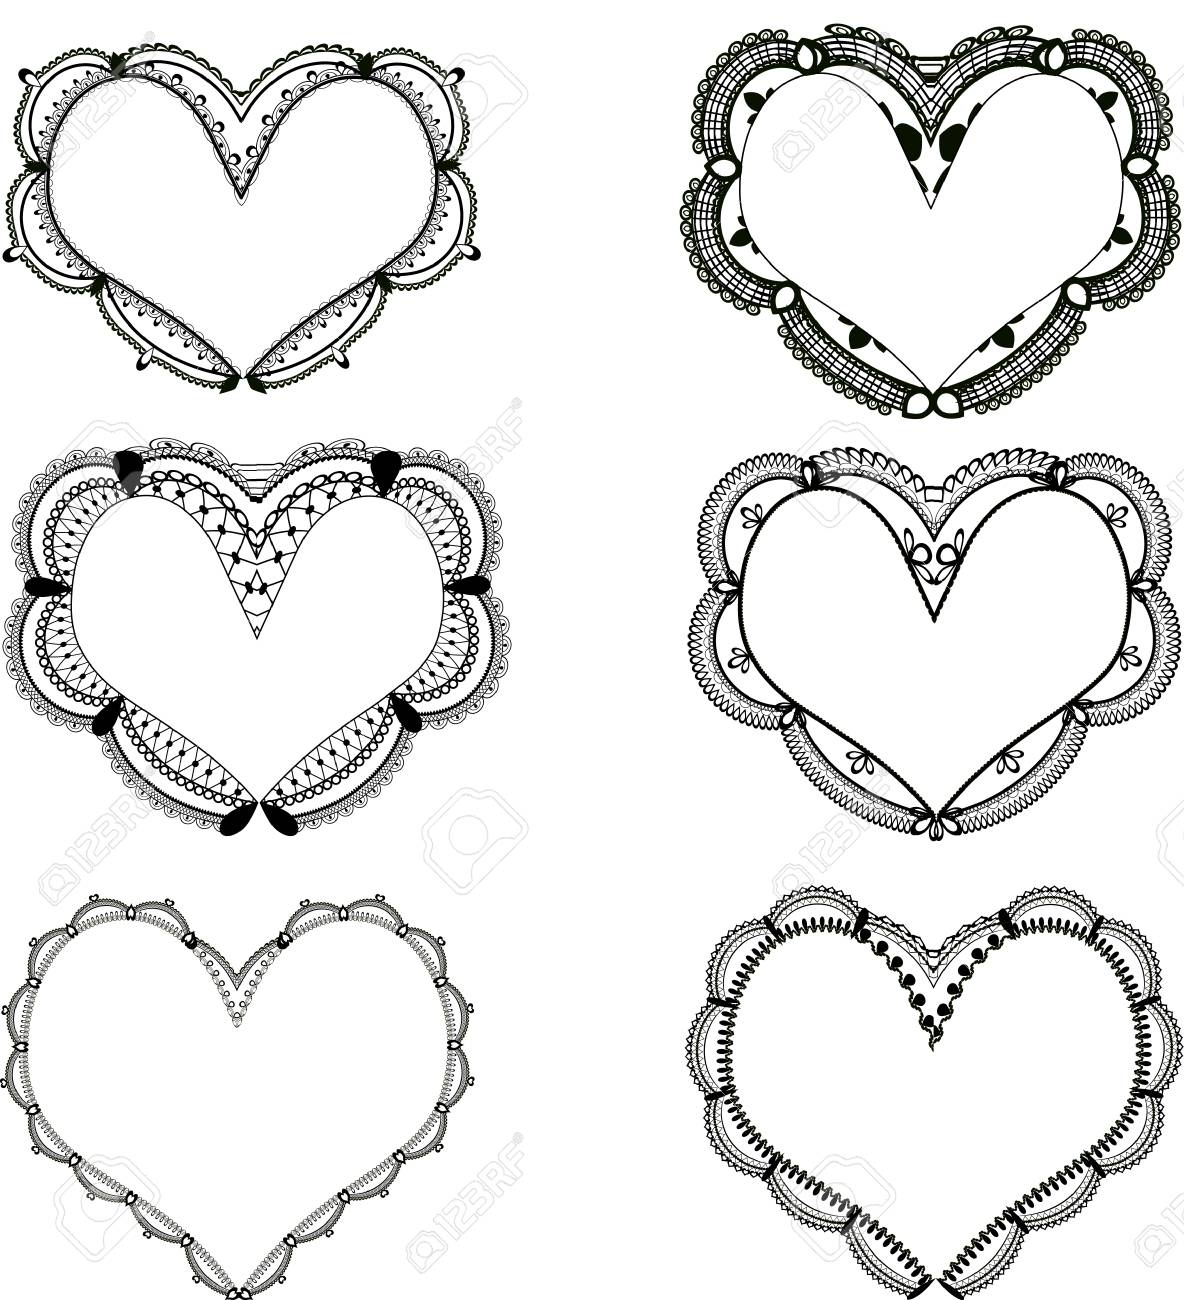 Set Of Black Lace Heart Shaped Frames Royalty Free Cliparts, Vectors ...